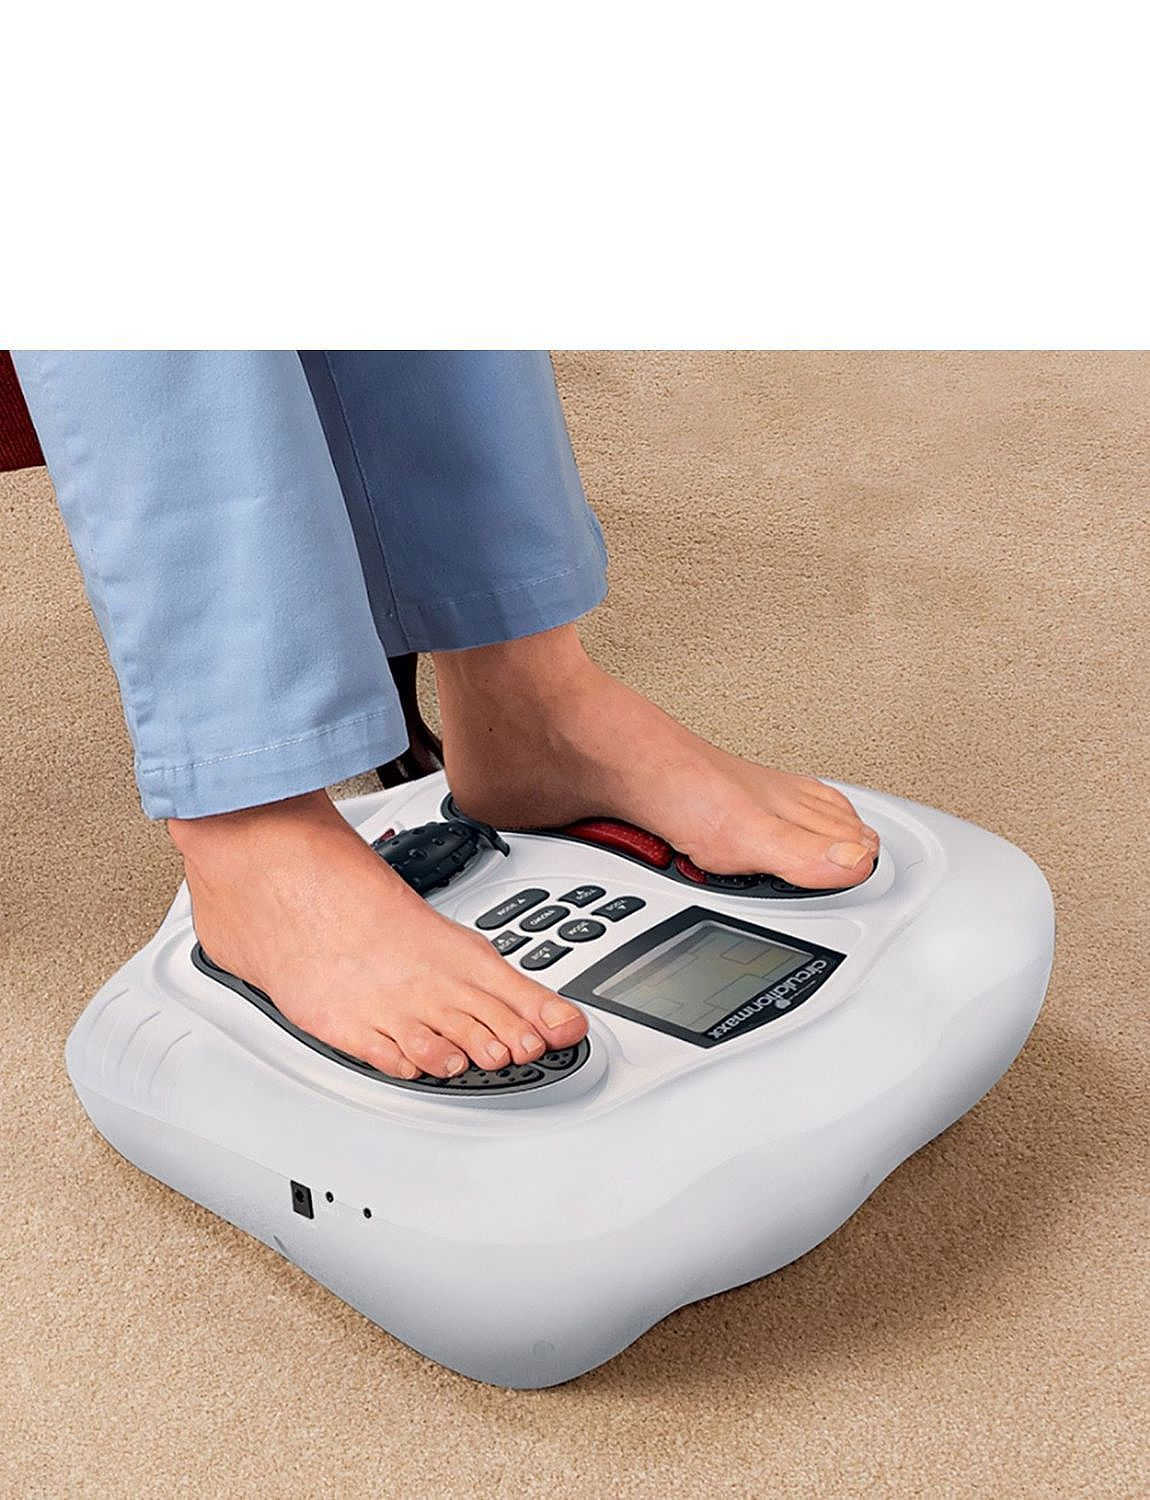 Deluxe Circulation Massager Lifestyle Health Amp Personal Care